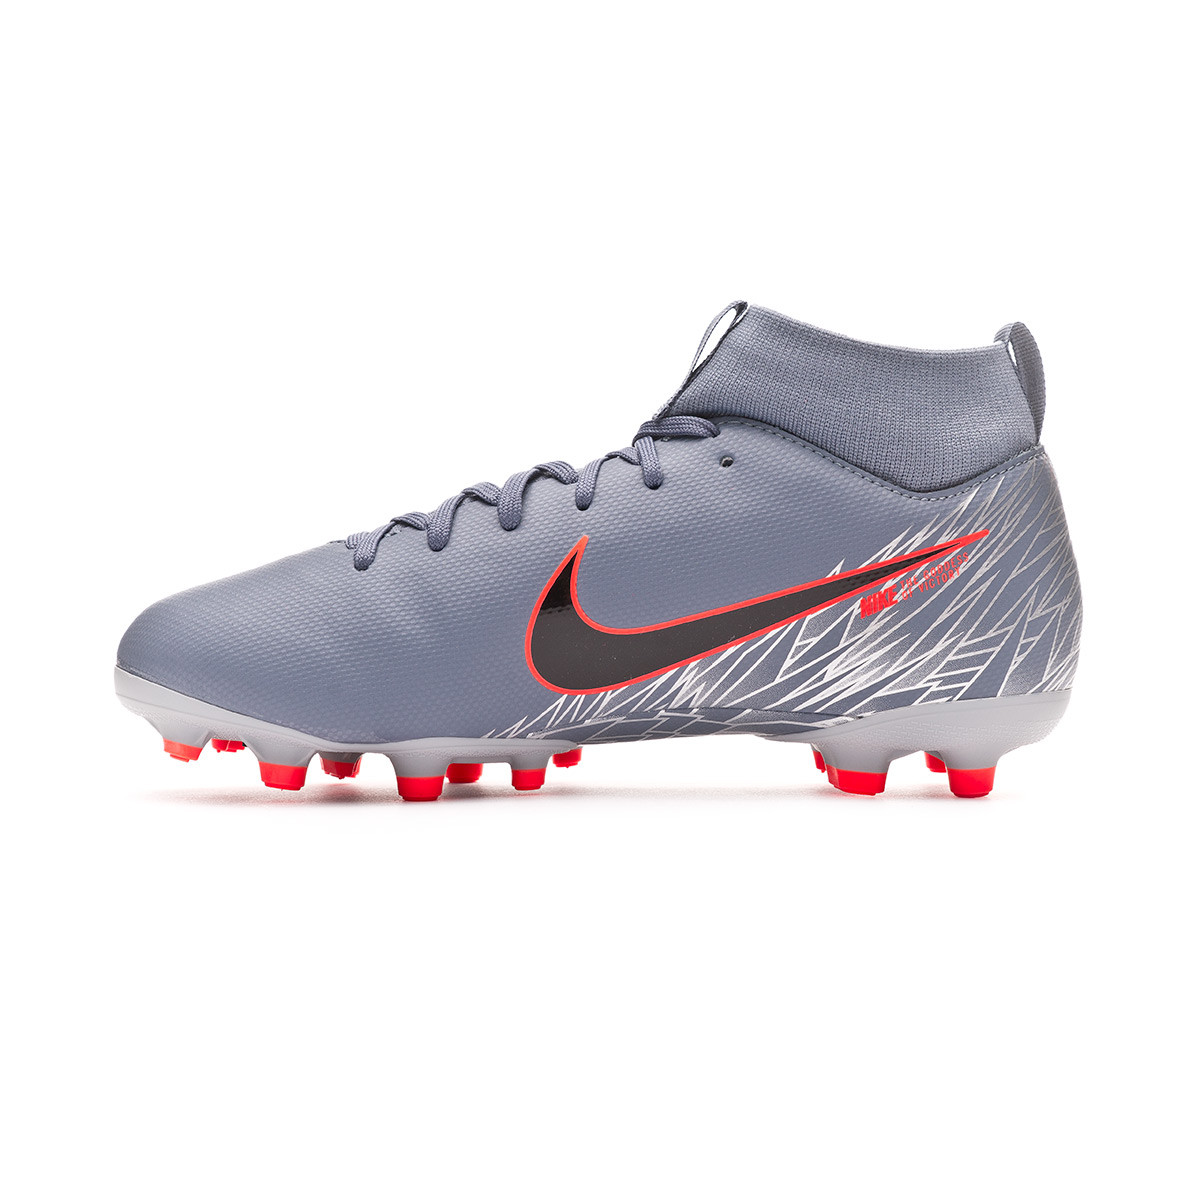 9f693dd5a Football Boots Nike Kids Mercurial Superfly VI Academy MG Niño Armory blue- Black-Wolf grey - Tienda de fútbol Fútbol Emotion